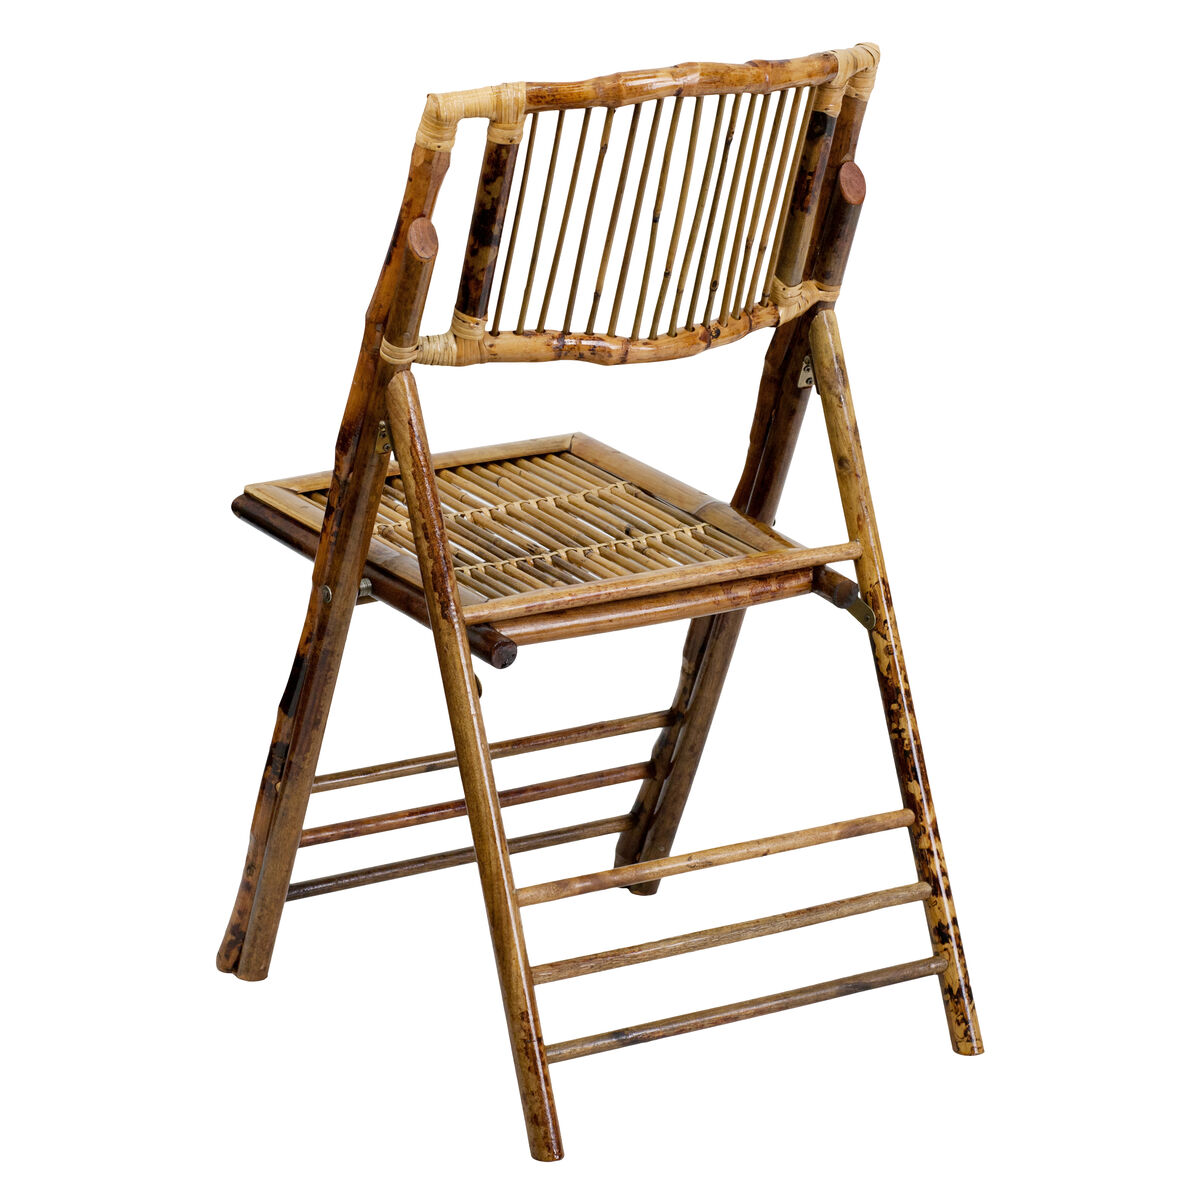 Bamboo Folding Chair X 62111 Bam Gg Foldingchairs4less Com